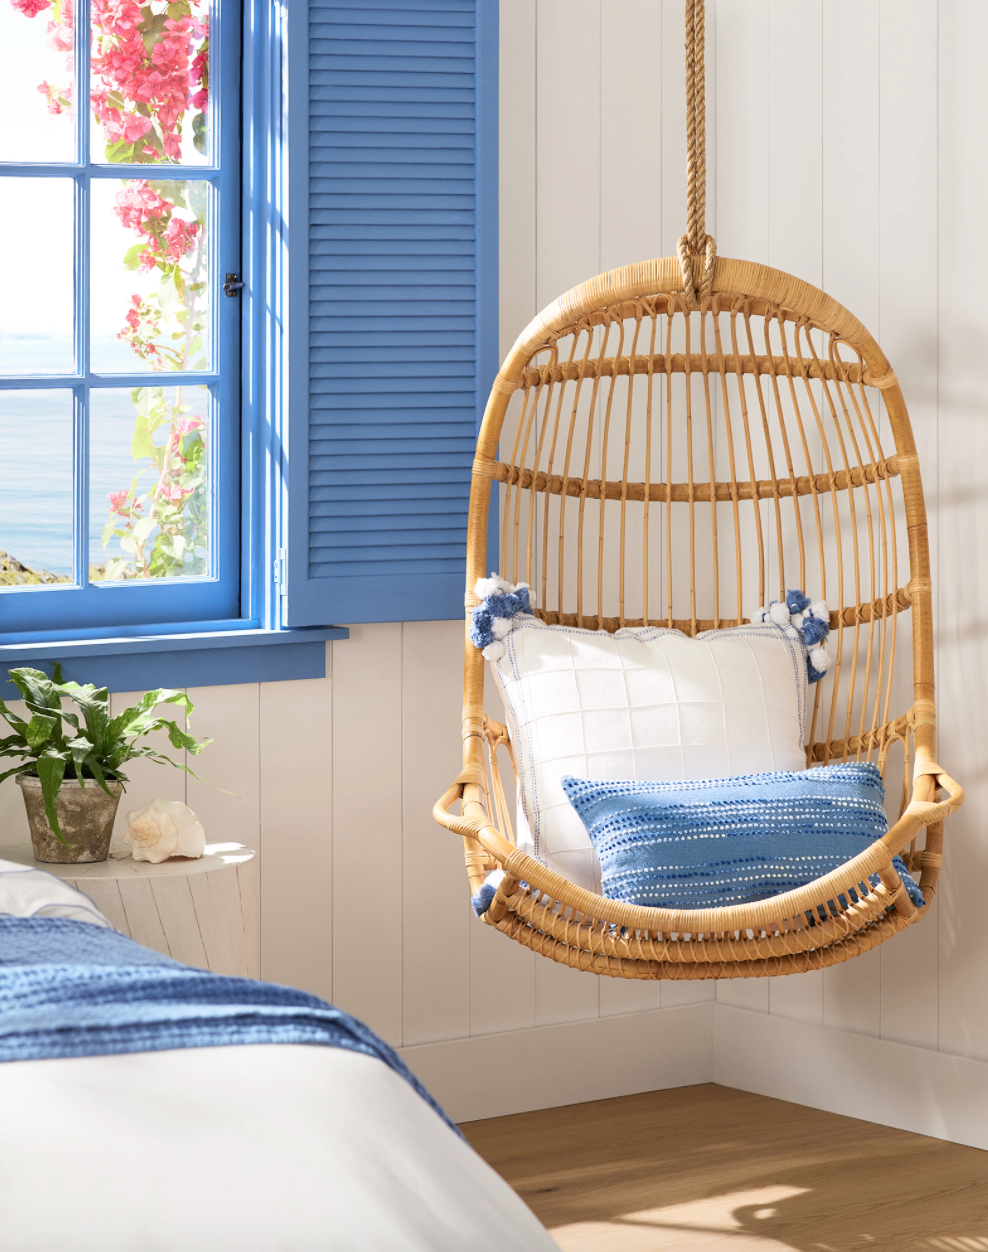 Rattan hanging swing in a light-filled room with blue pillows and accents